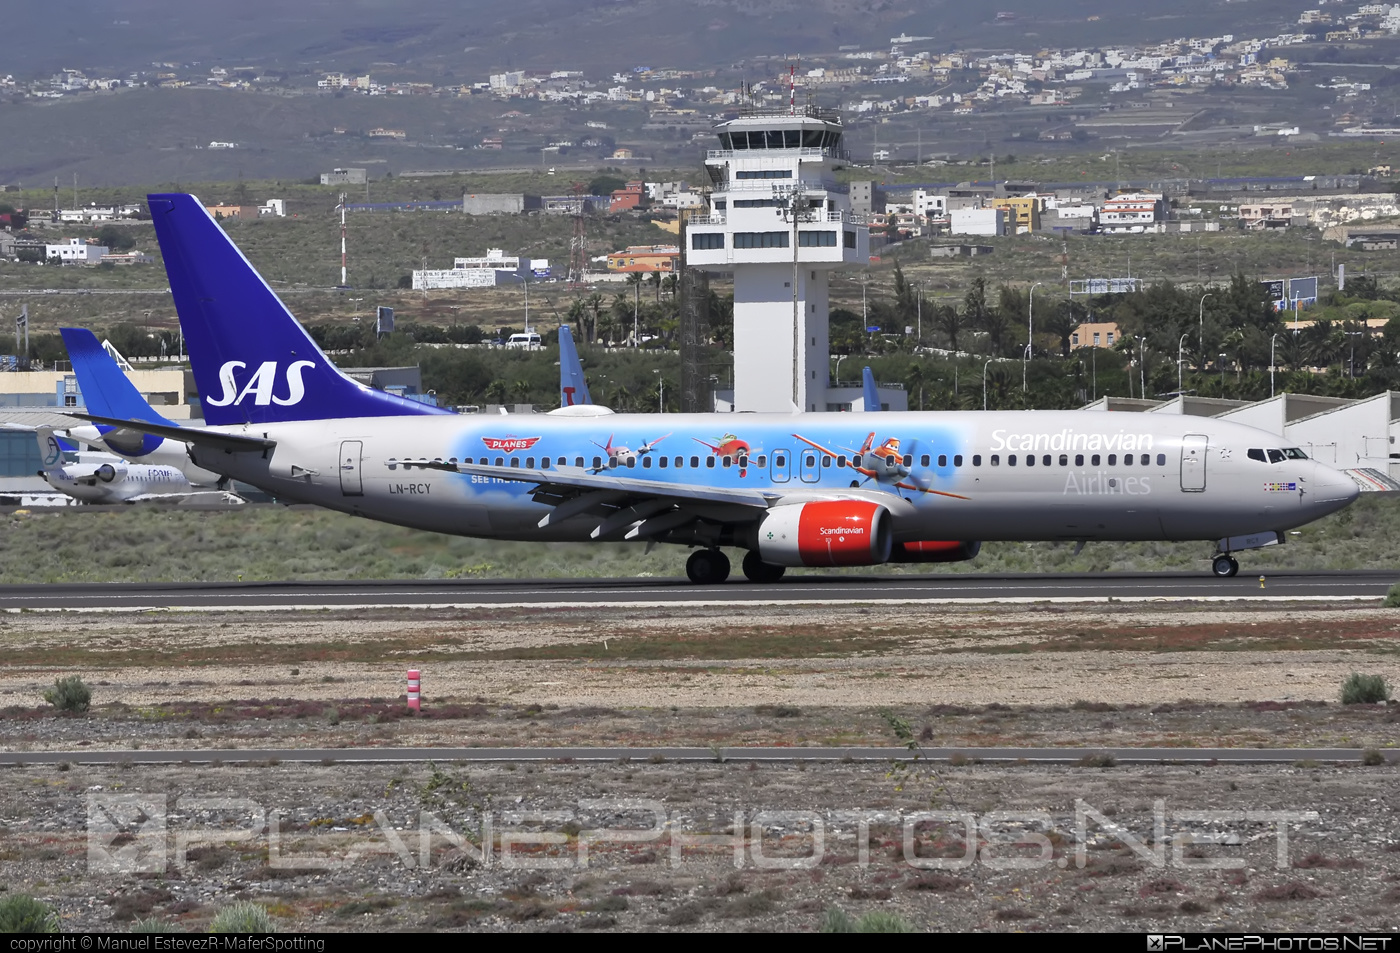 Boeing 737-800 - LN-RCY operated by Scandinavian Airlines (SAS) #b737 #b737nextgen #b737ng #boeing #boeing737 #sas #sasairlines #scandinavianairlines